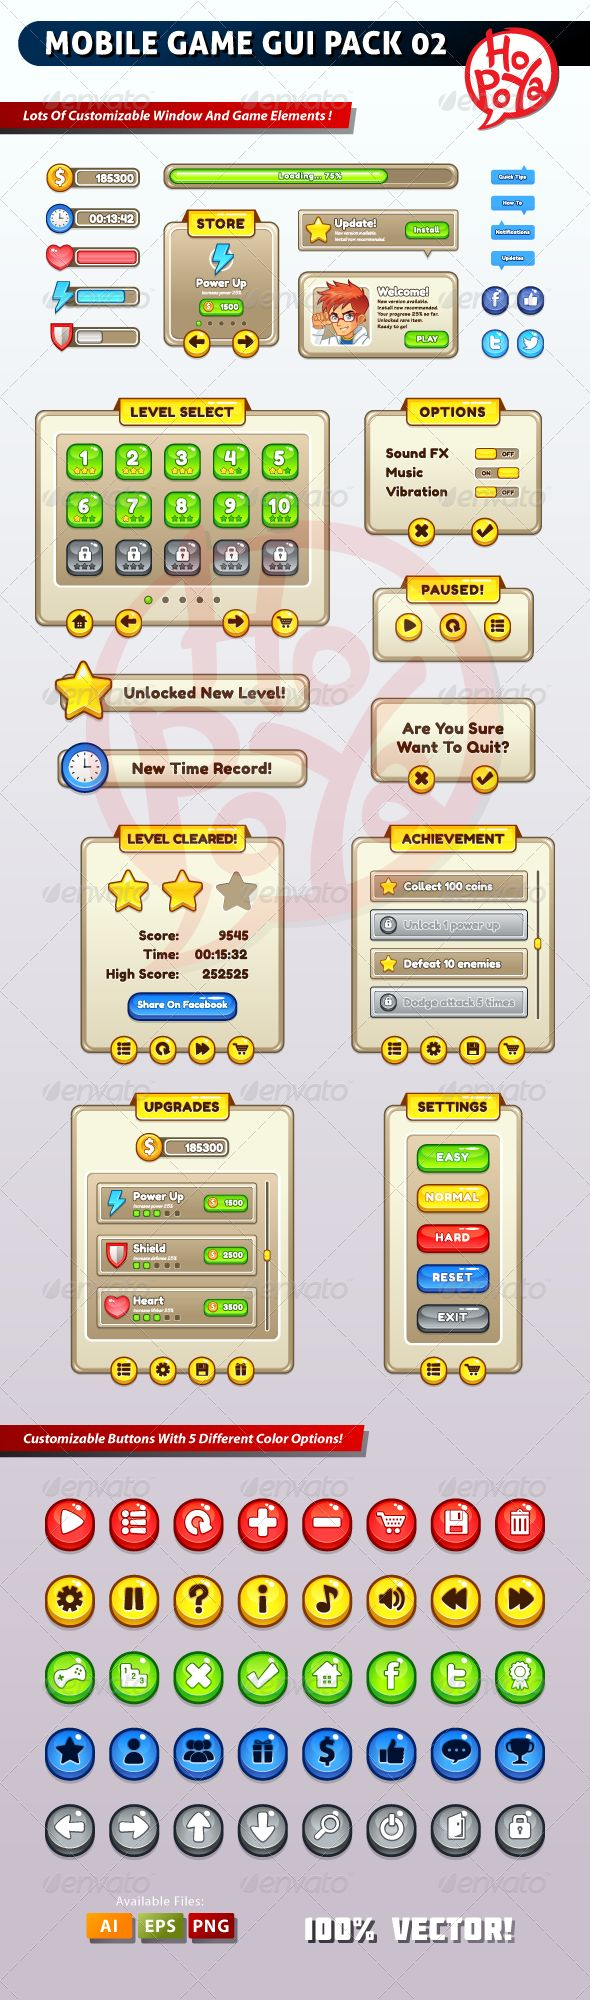 Mobile Game GUI Pack 02 - Web Elements Vectors